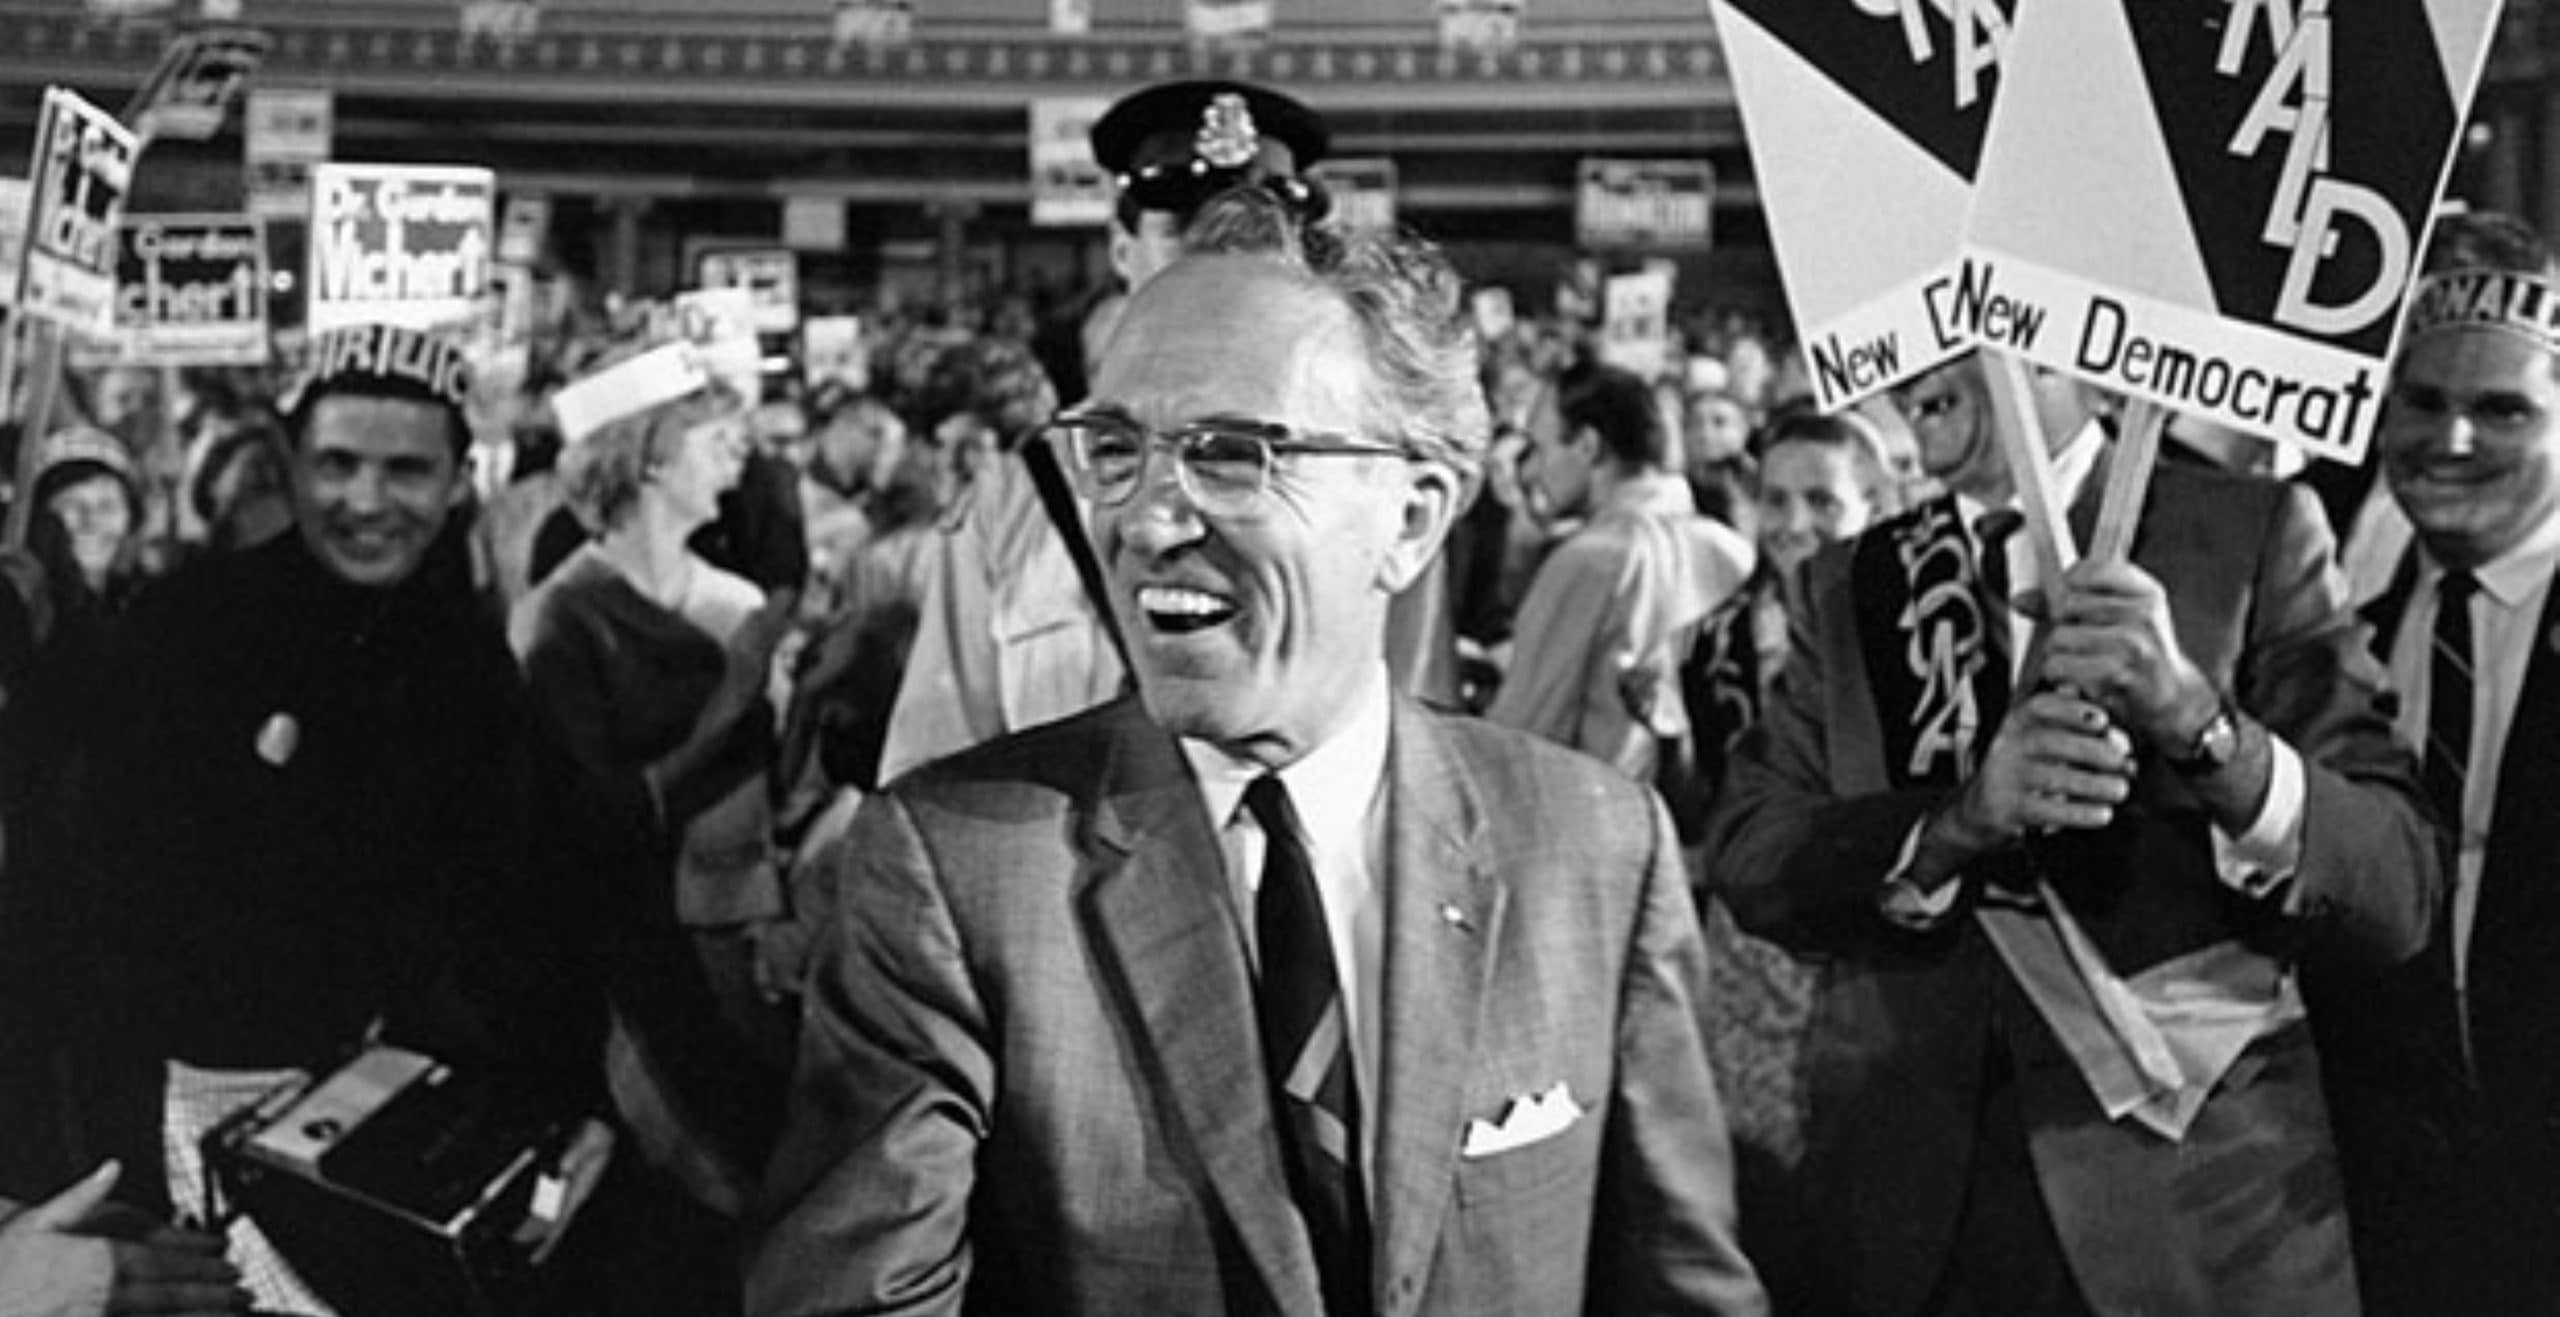 Tommy Douglas. Source: historicuk.com